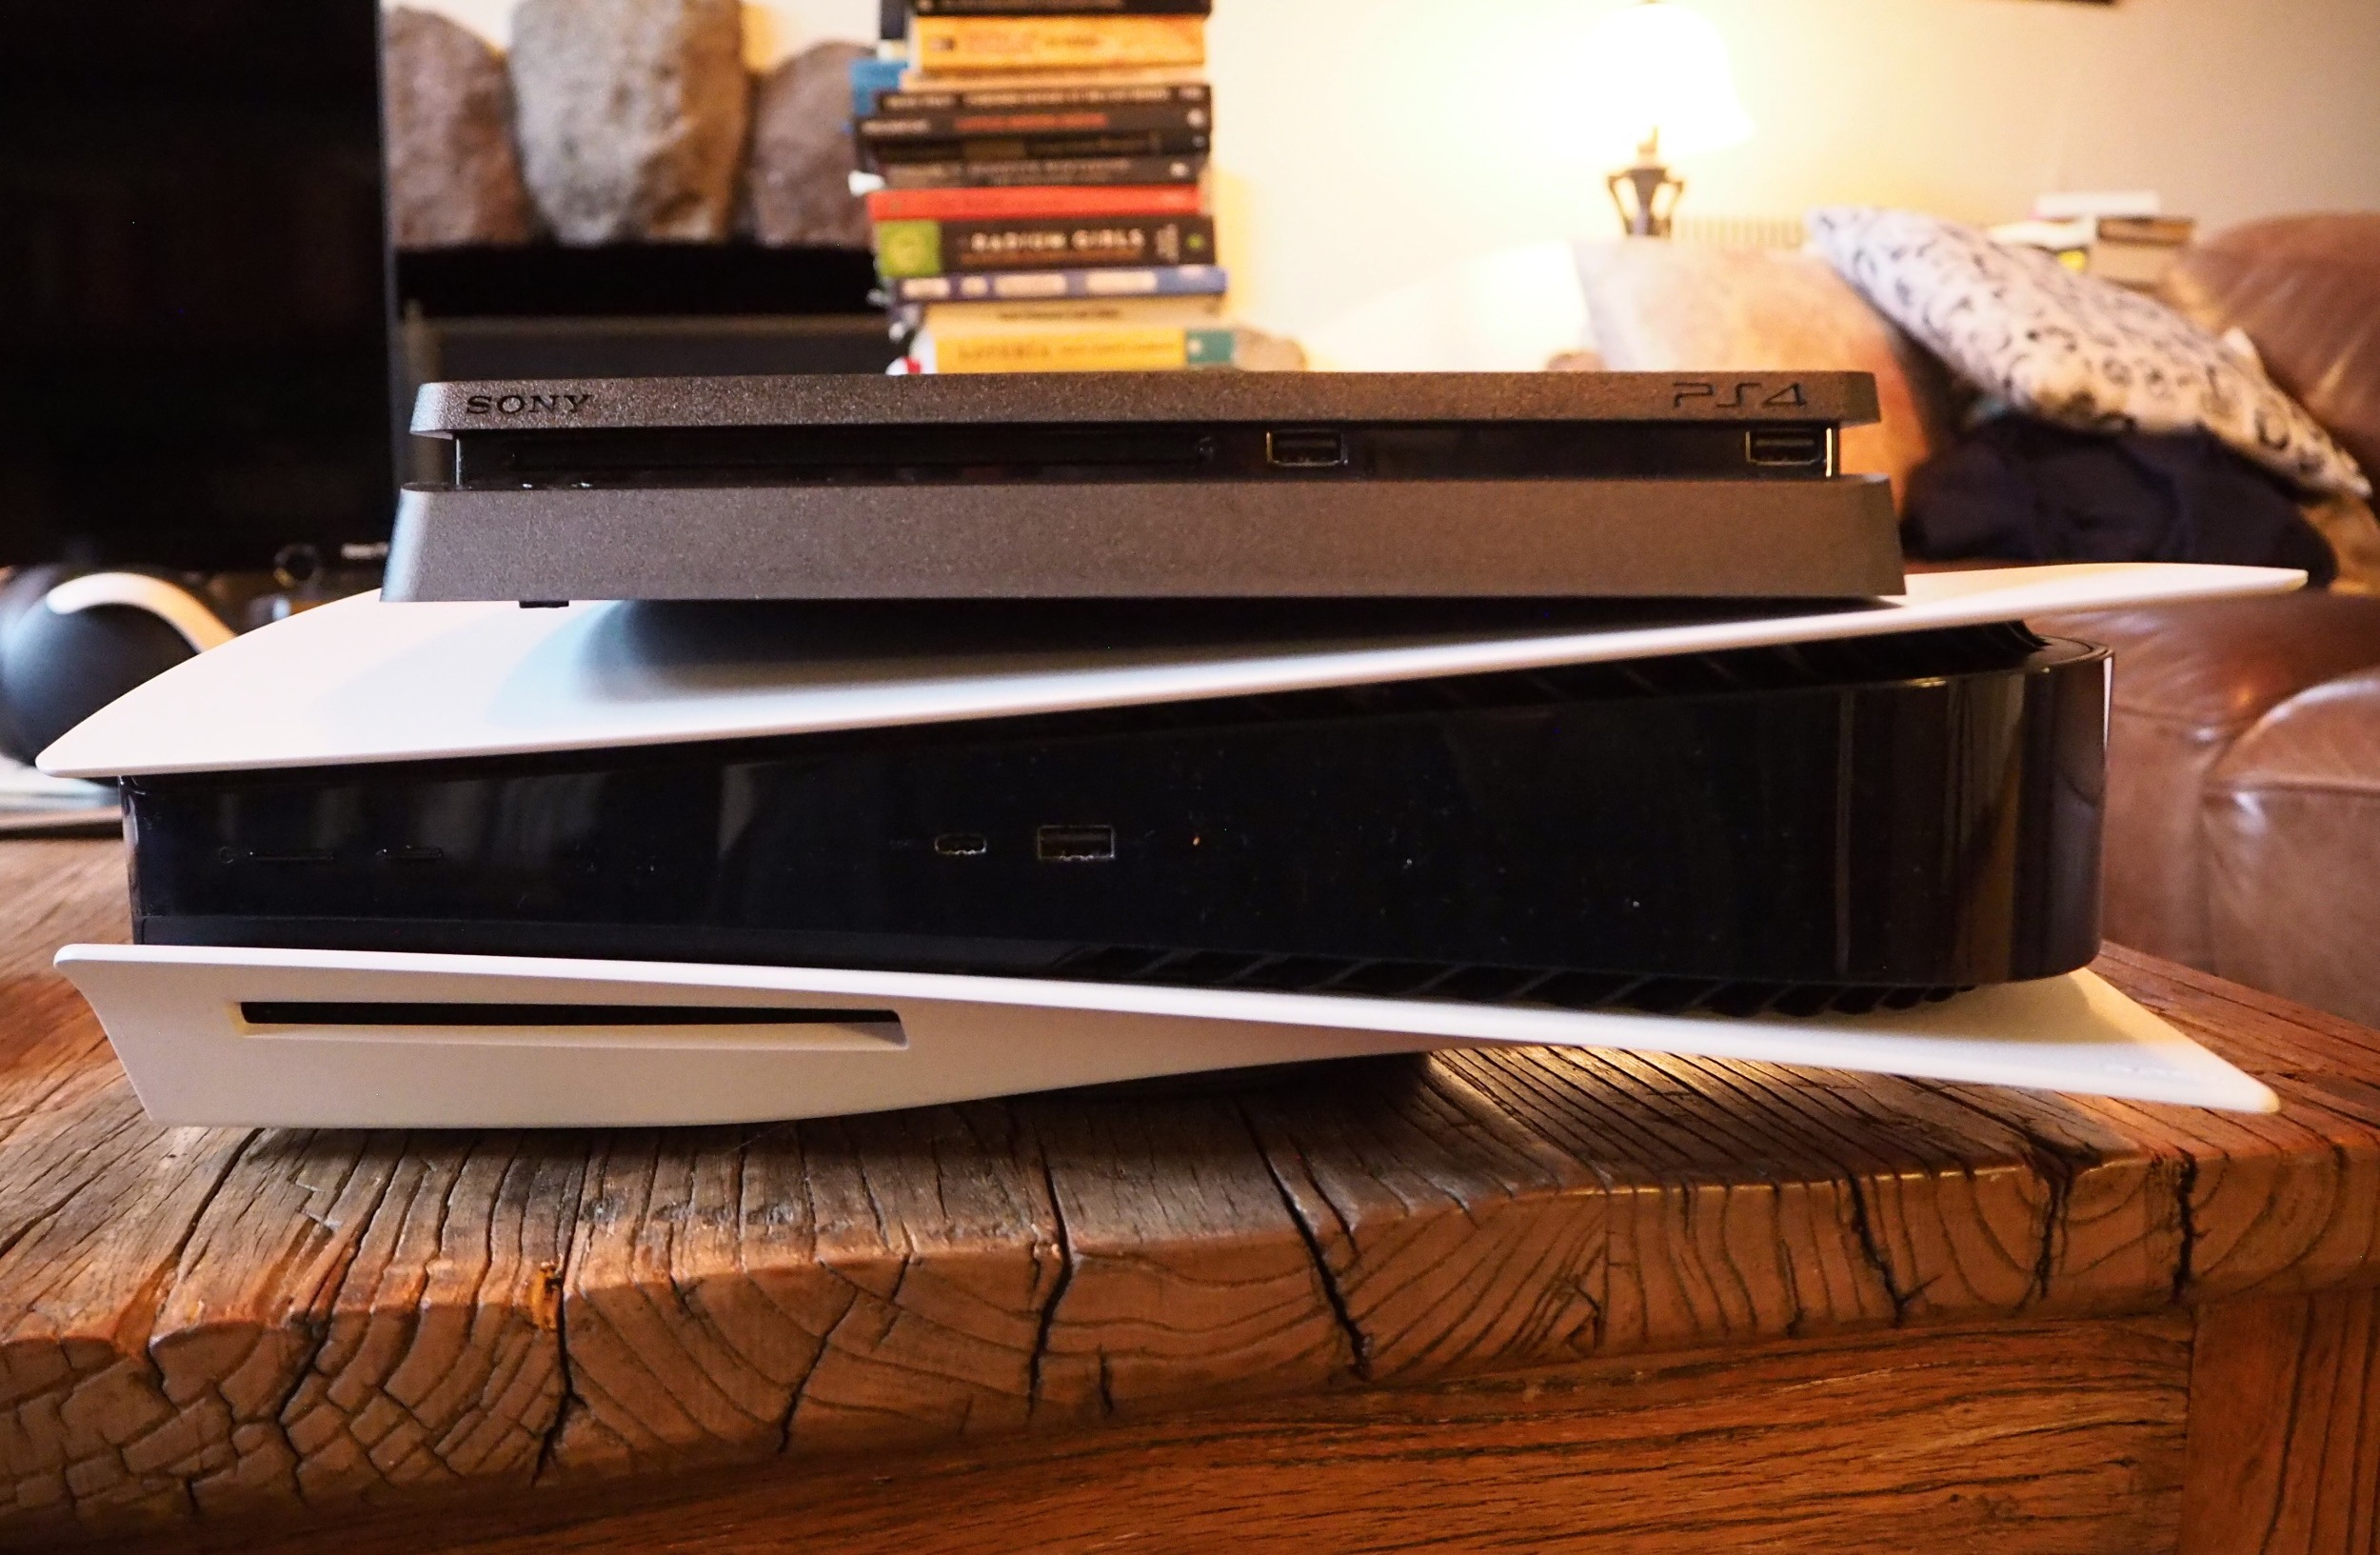 A PS5 console with a PS4 on top